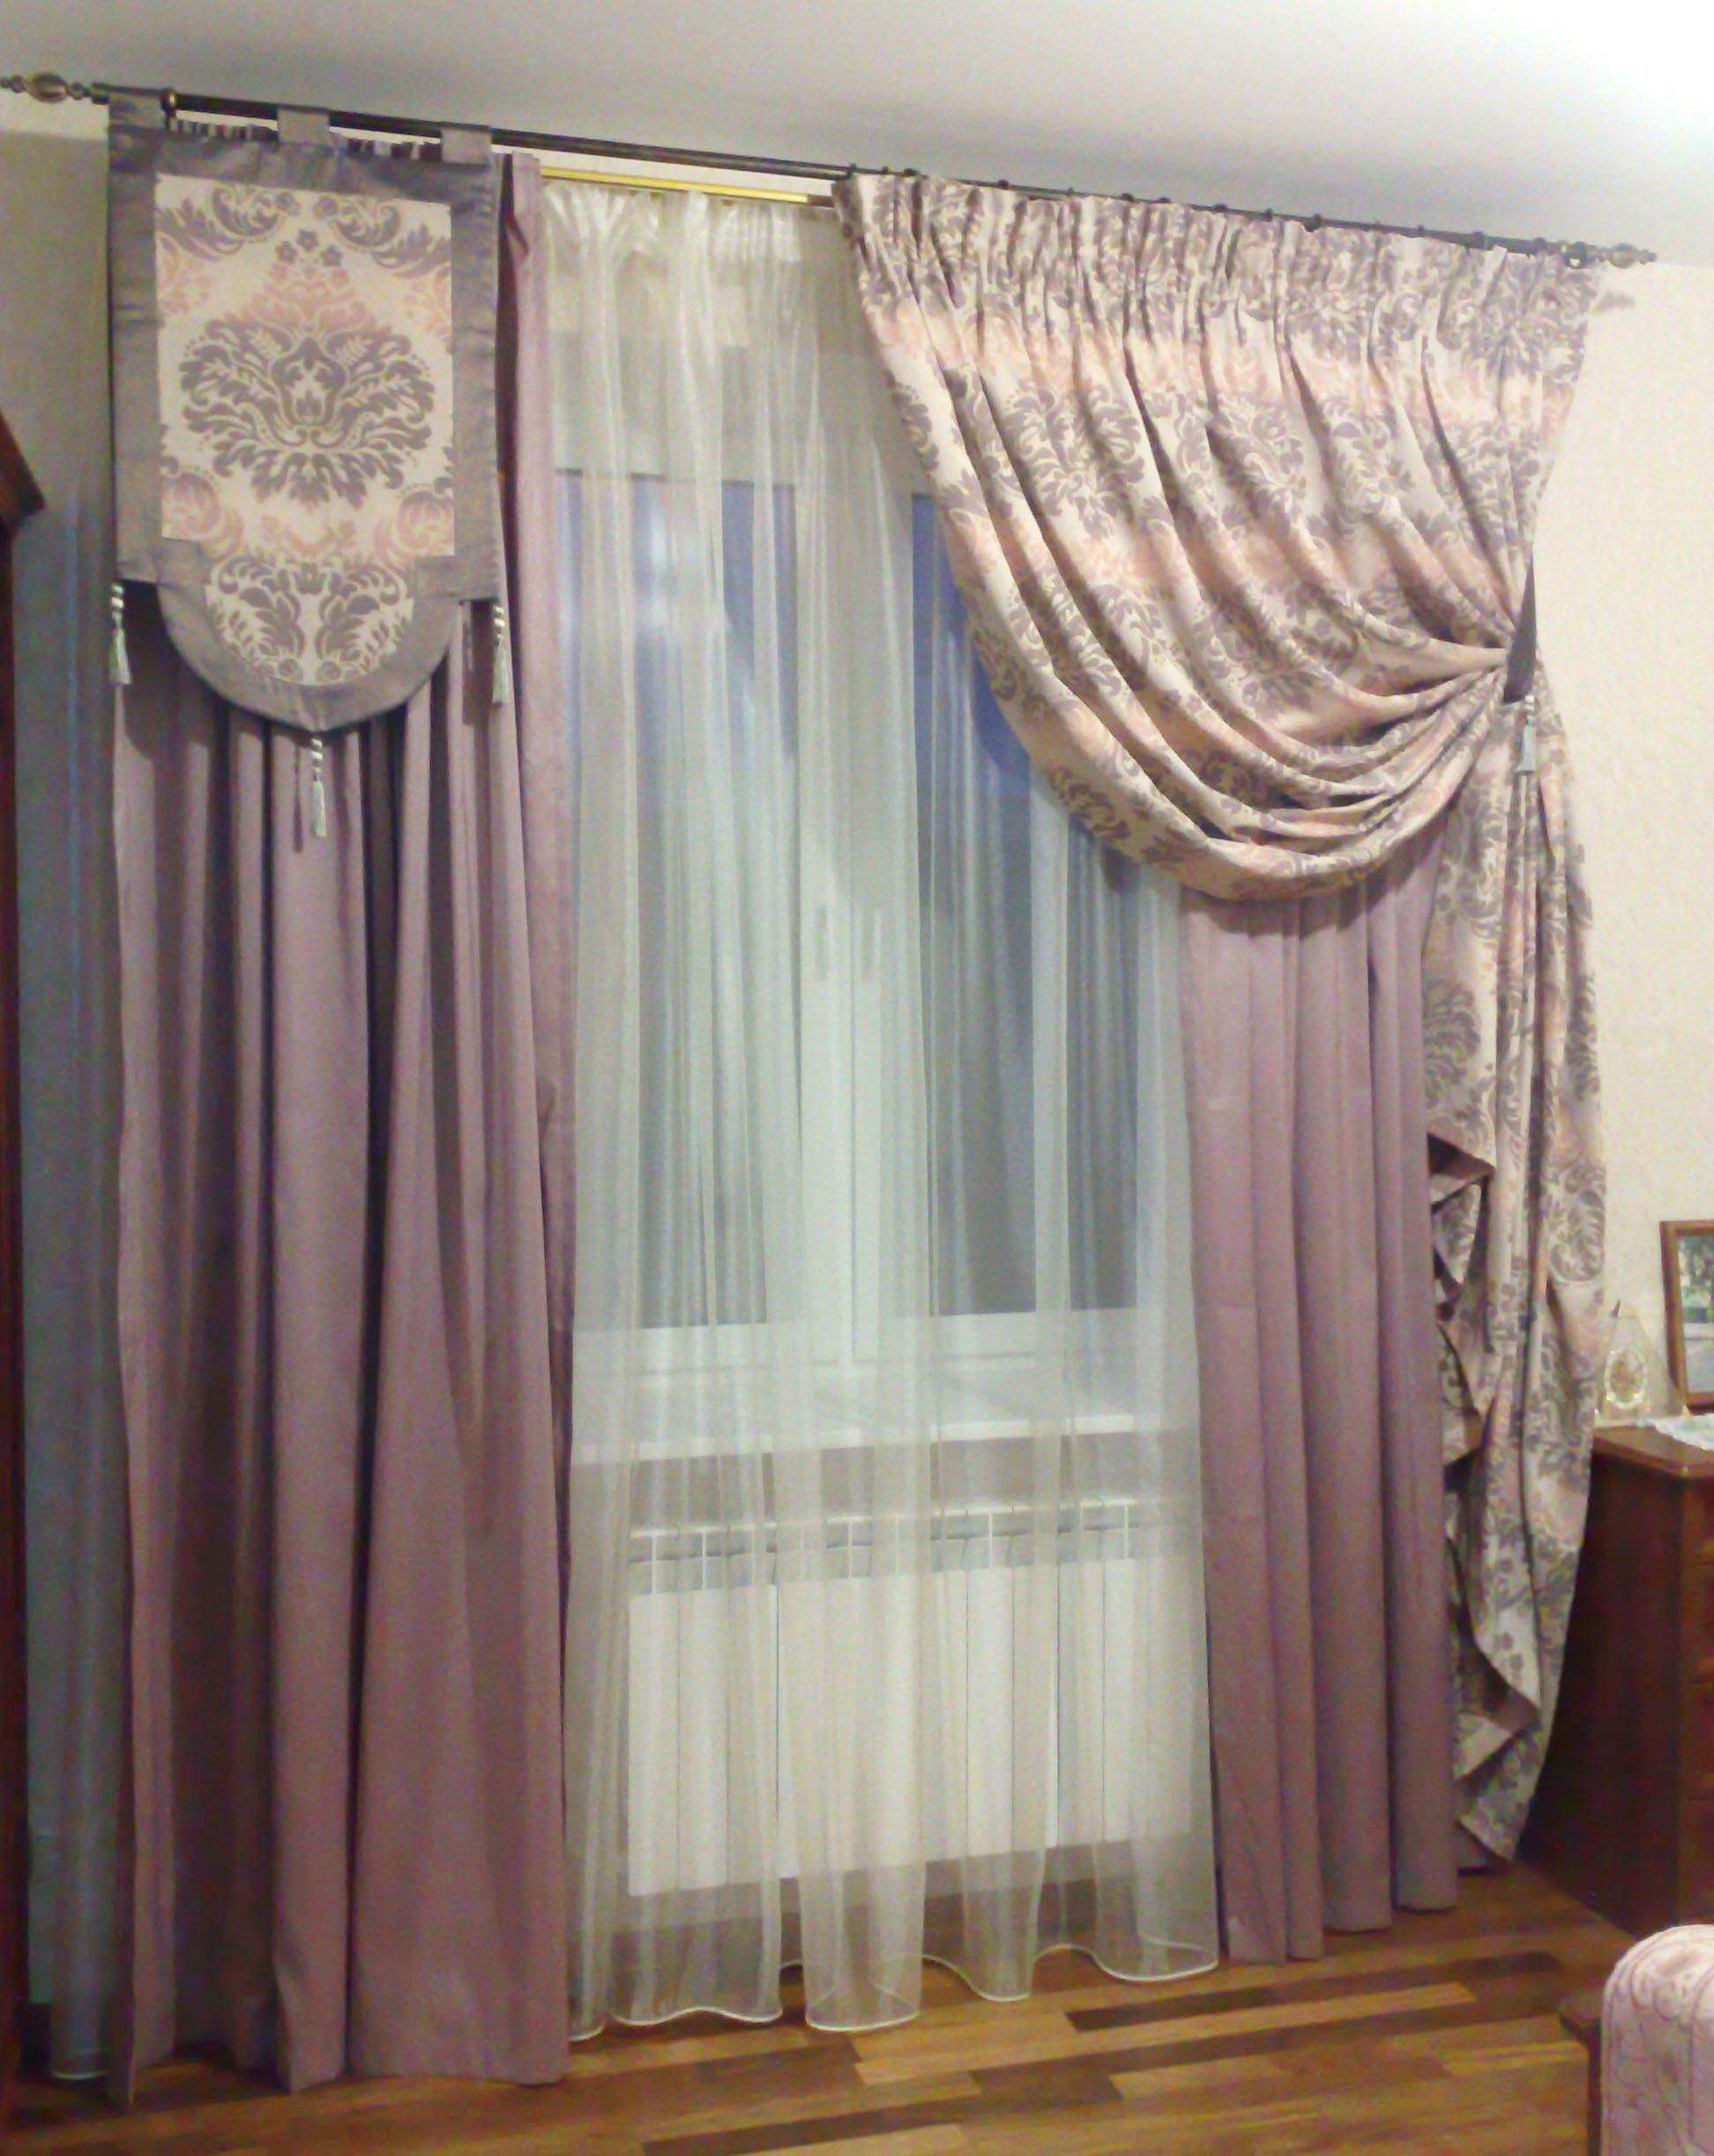 mix best rod malotshaf curtain dark the window awesome ideas images pinterest match for classic curtains on house